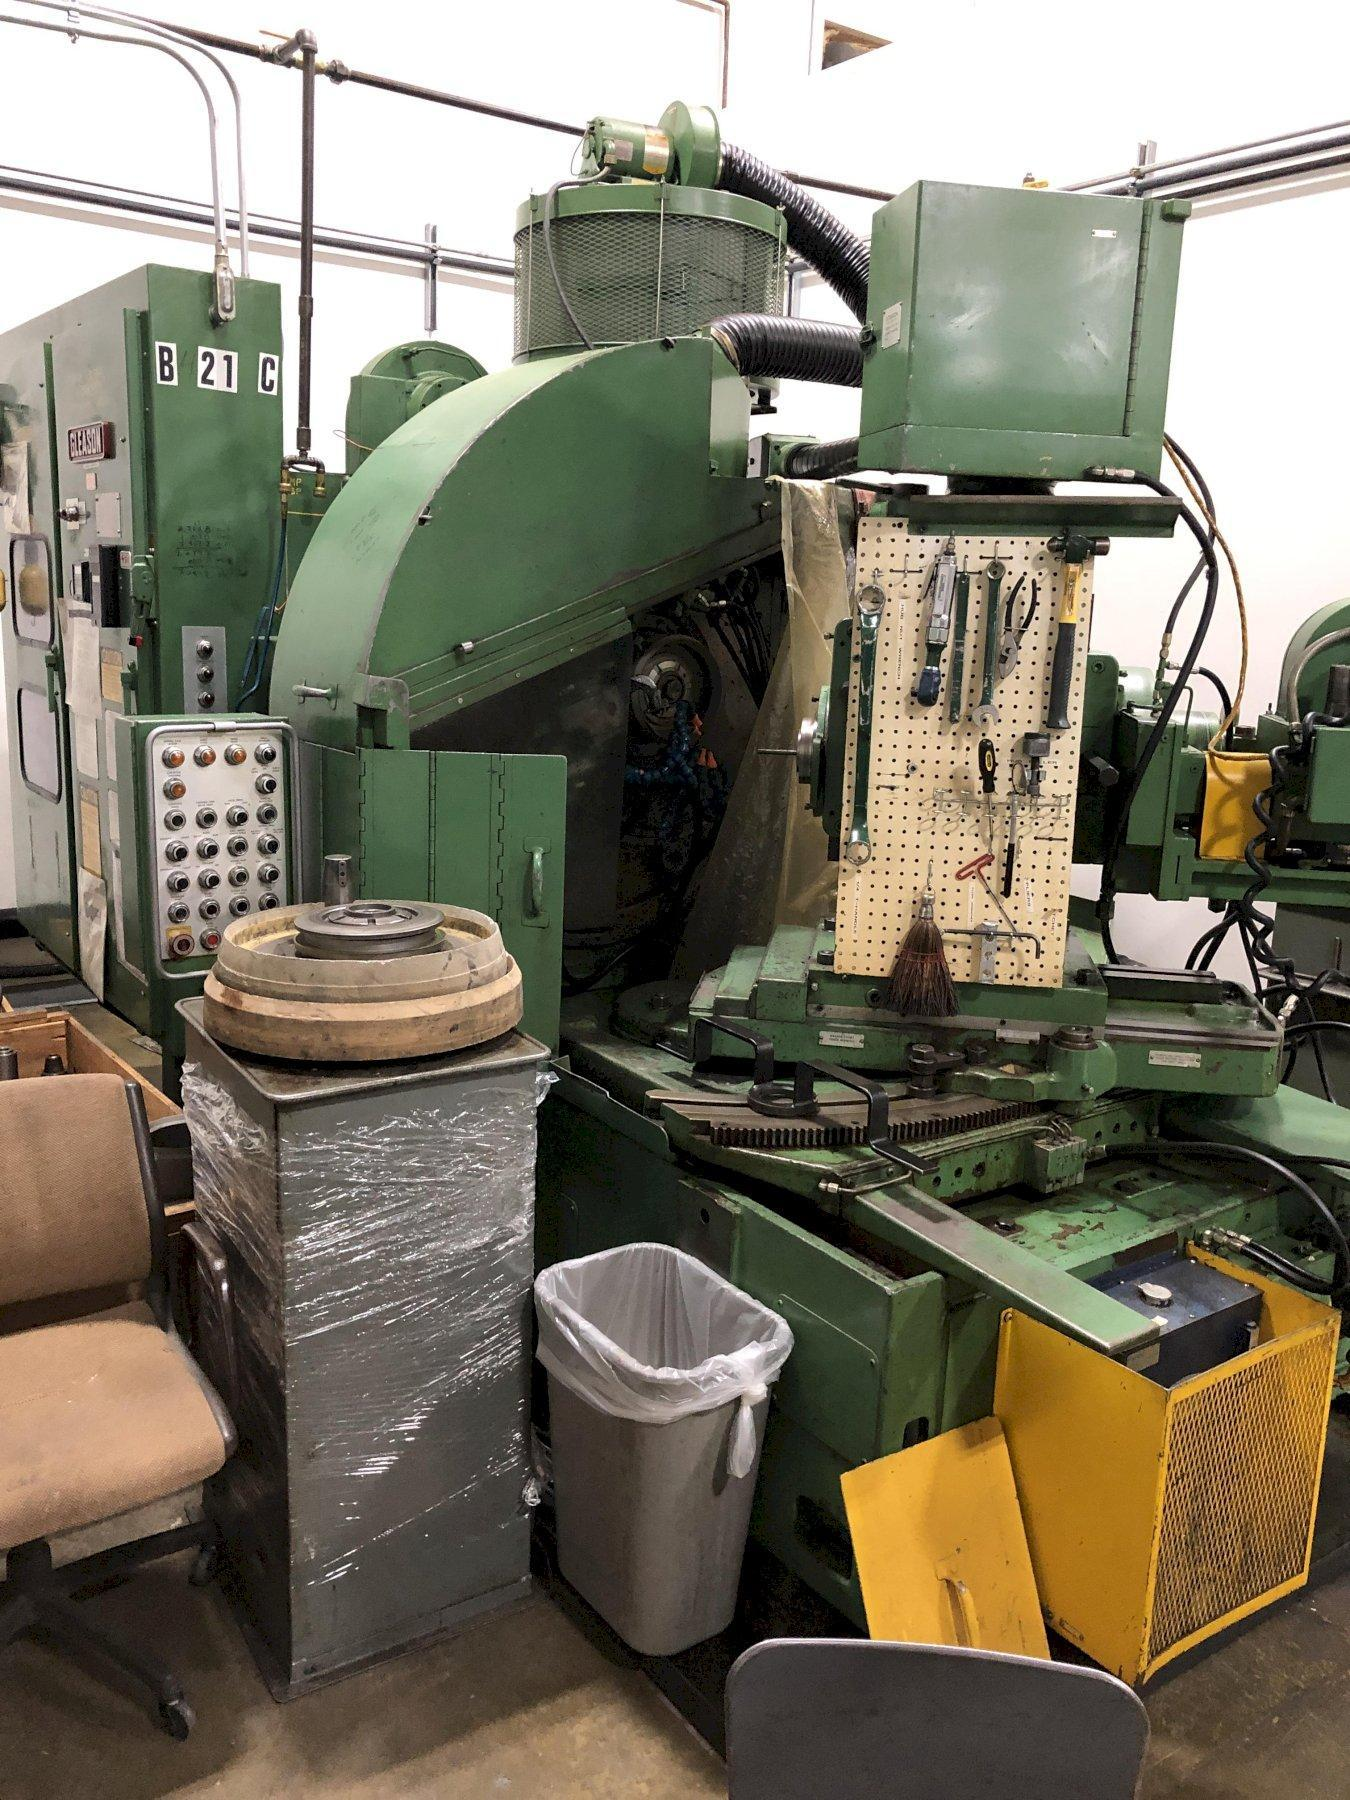 Gleason Model 463 Hypoid Gear Grinder